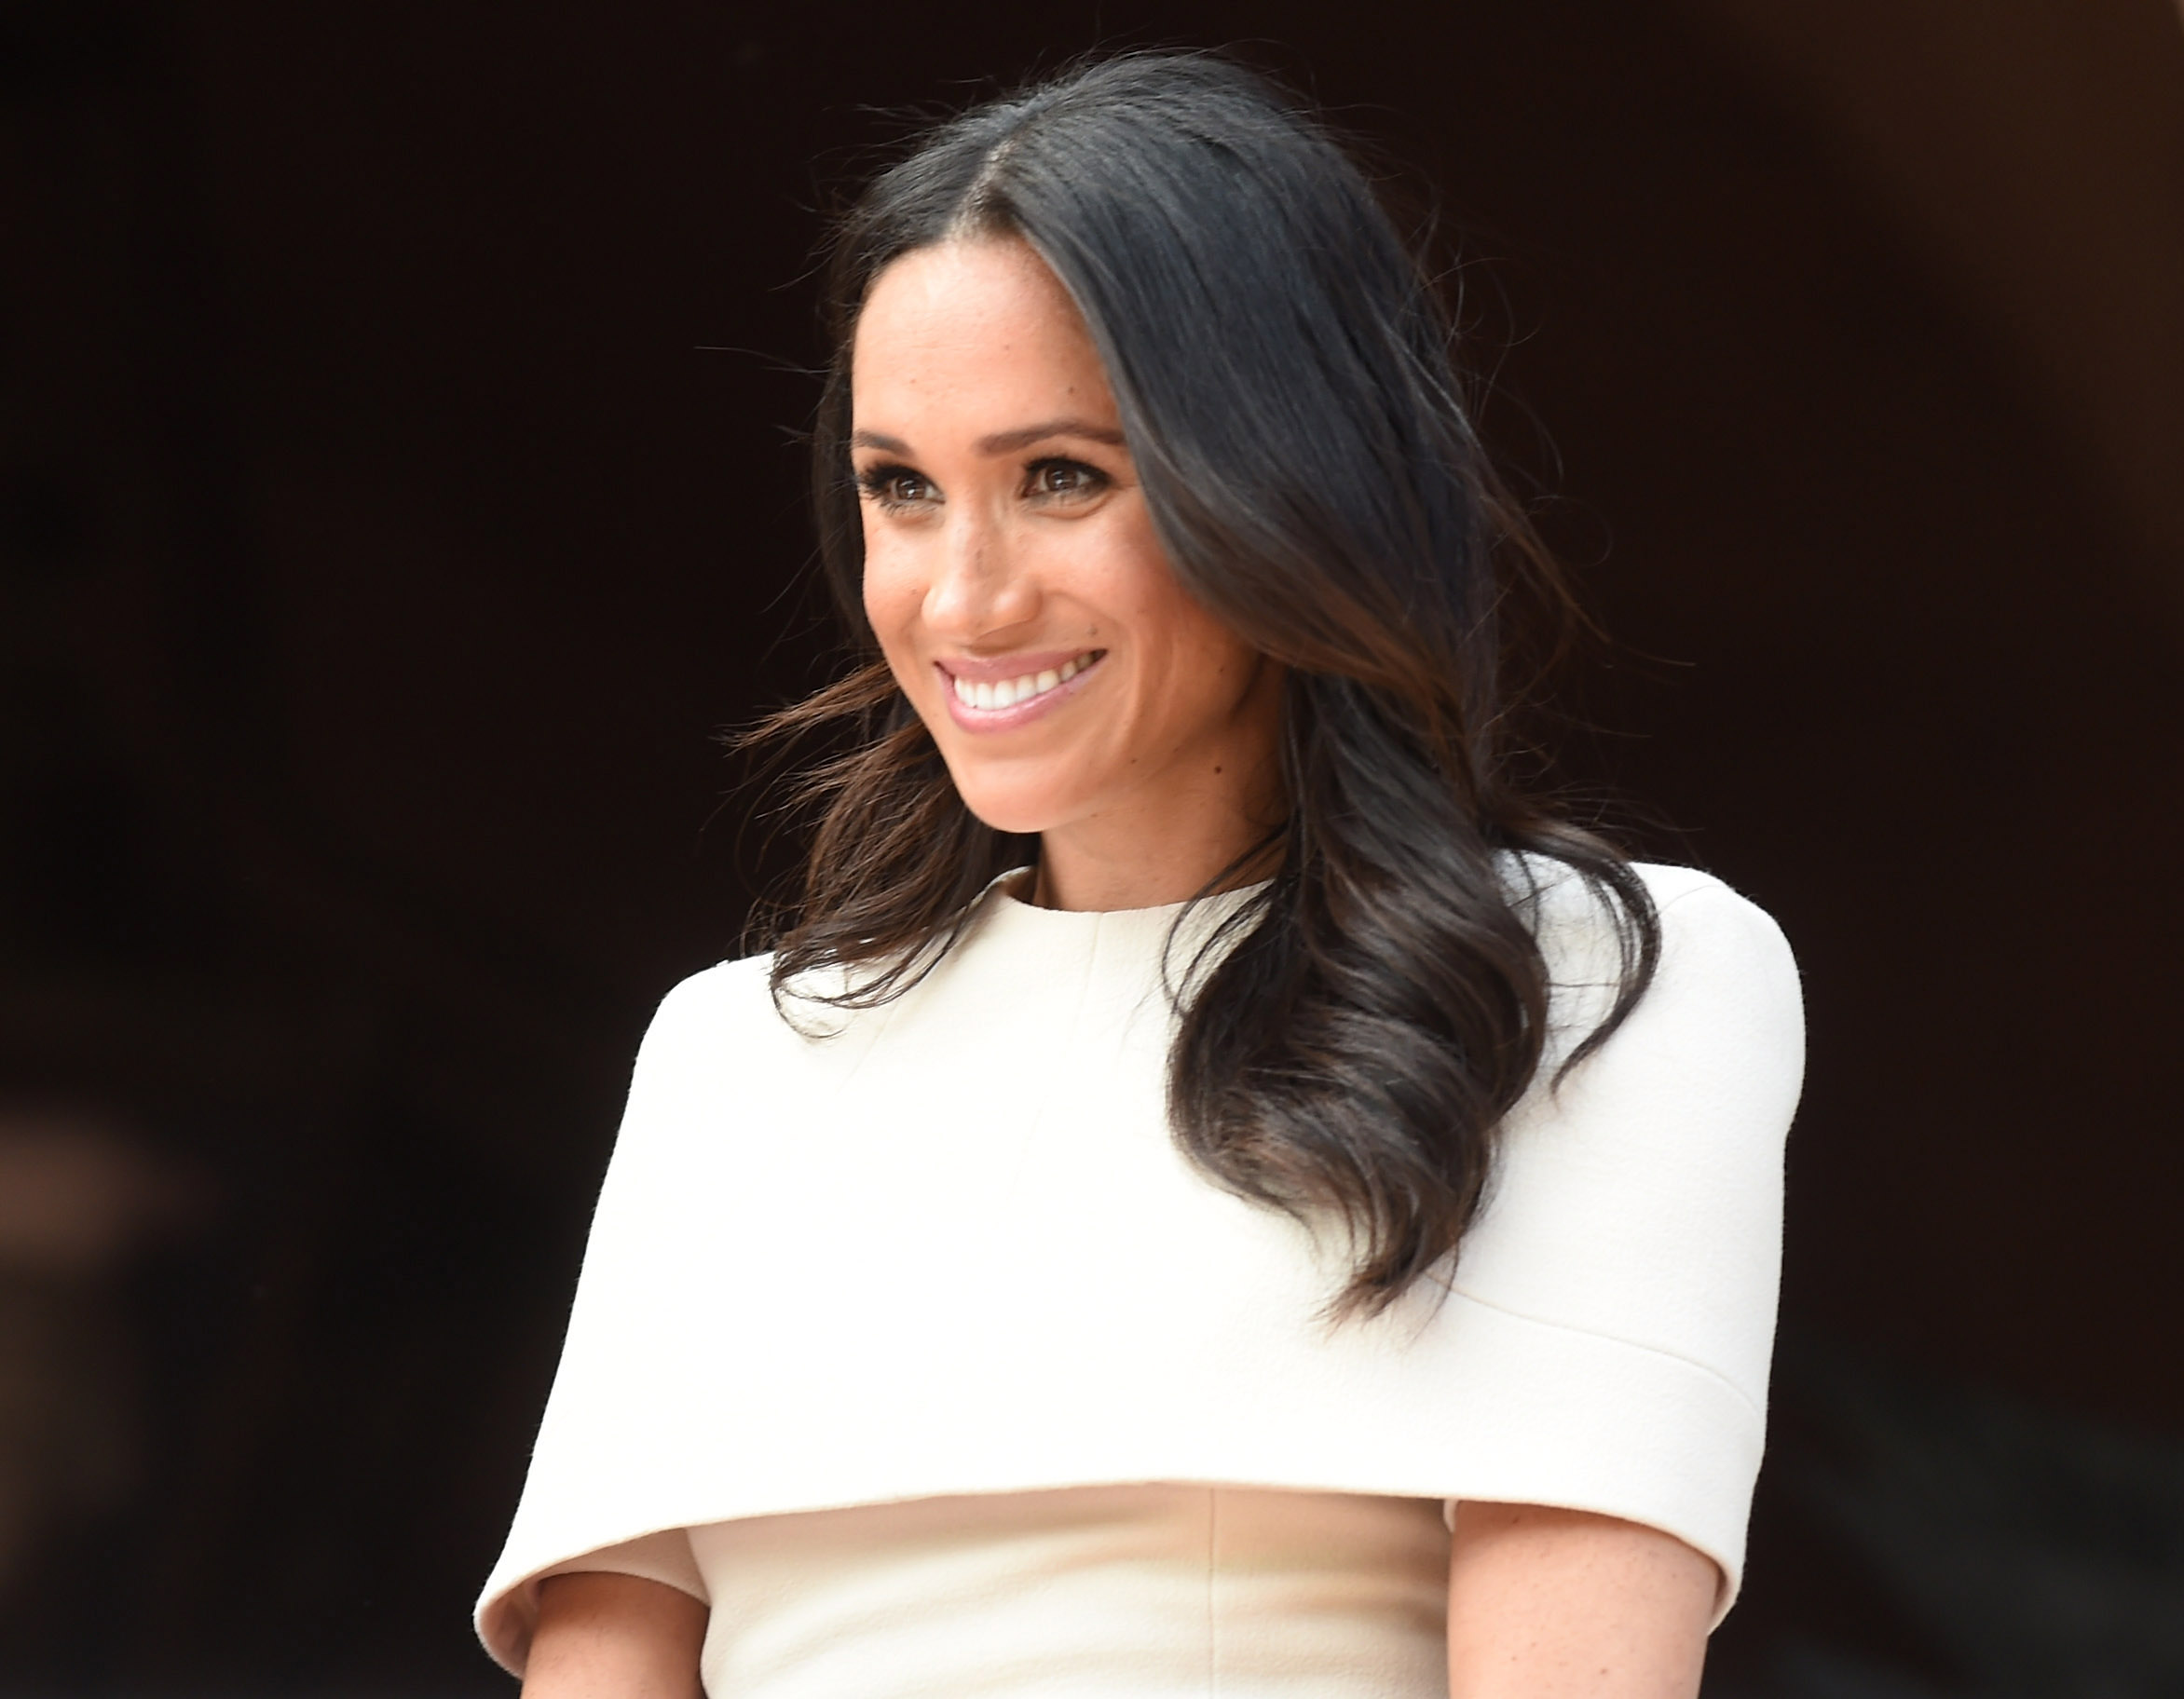 Thomas Markle asked Prince Harry not to marry Meghan (Photo by Anthony Devlin/Getty Images)